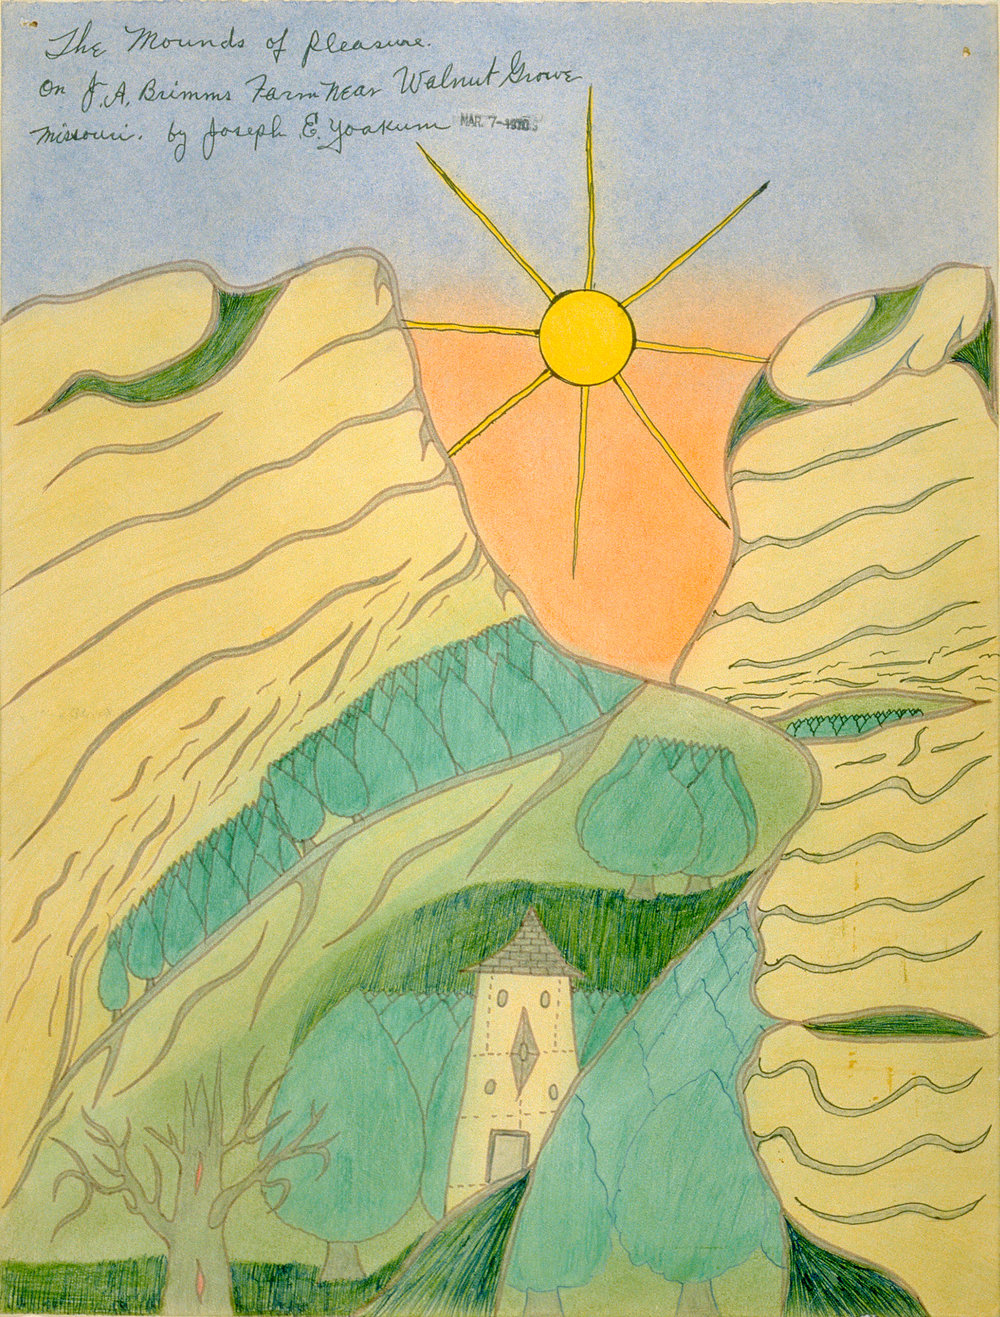 Joseph Yoakum (American, 1886-1972).  The Mounds of Pleasure/on JA Brimms Farm Near Walnut Grove... , 1970. Ink and pastel on paper, 15 3/8 x 11 3/4 in. Richard and Ellen Sandor Family Collection